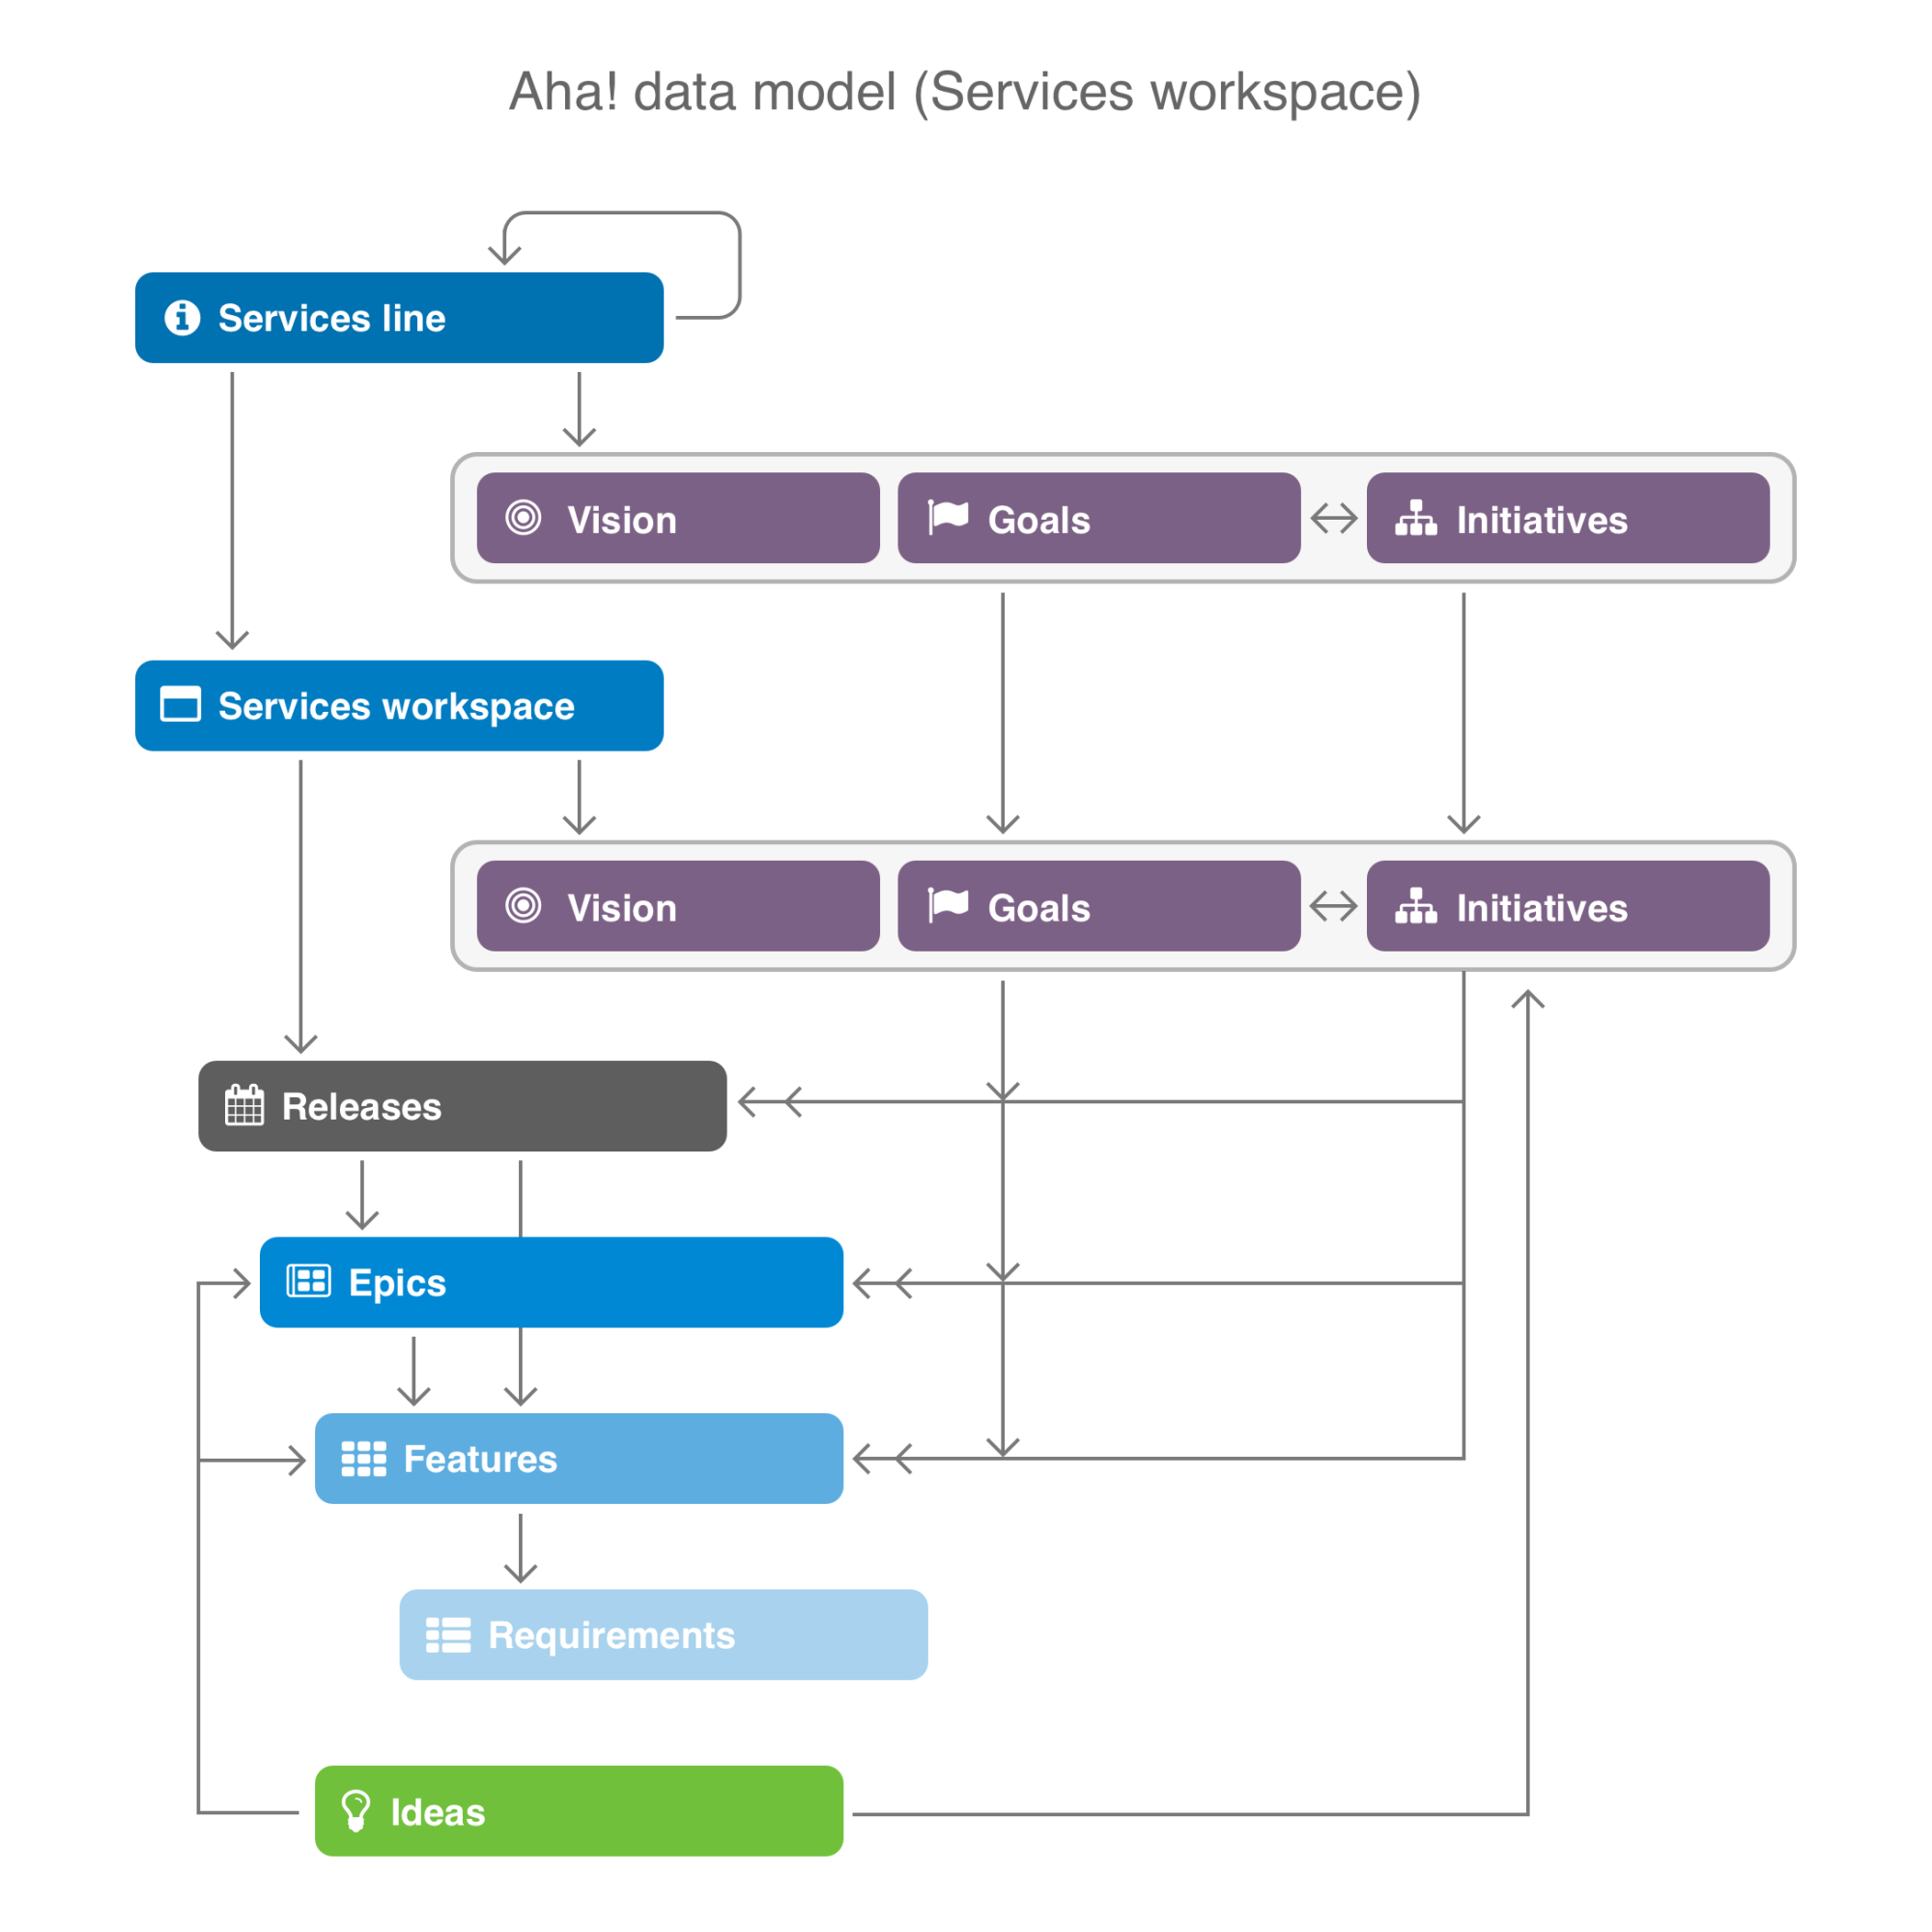 Data model in services workspace.